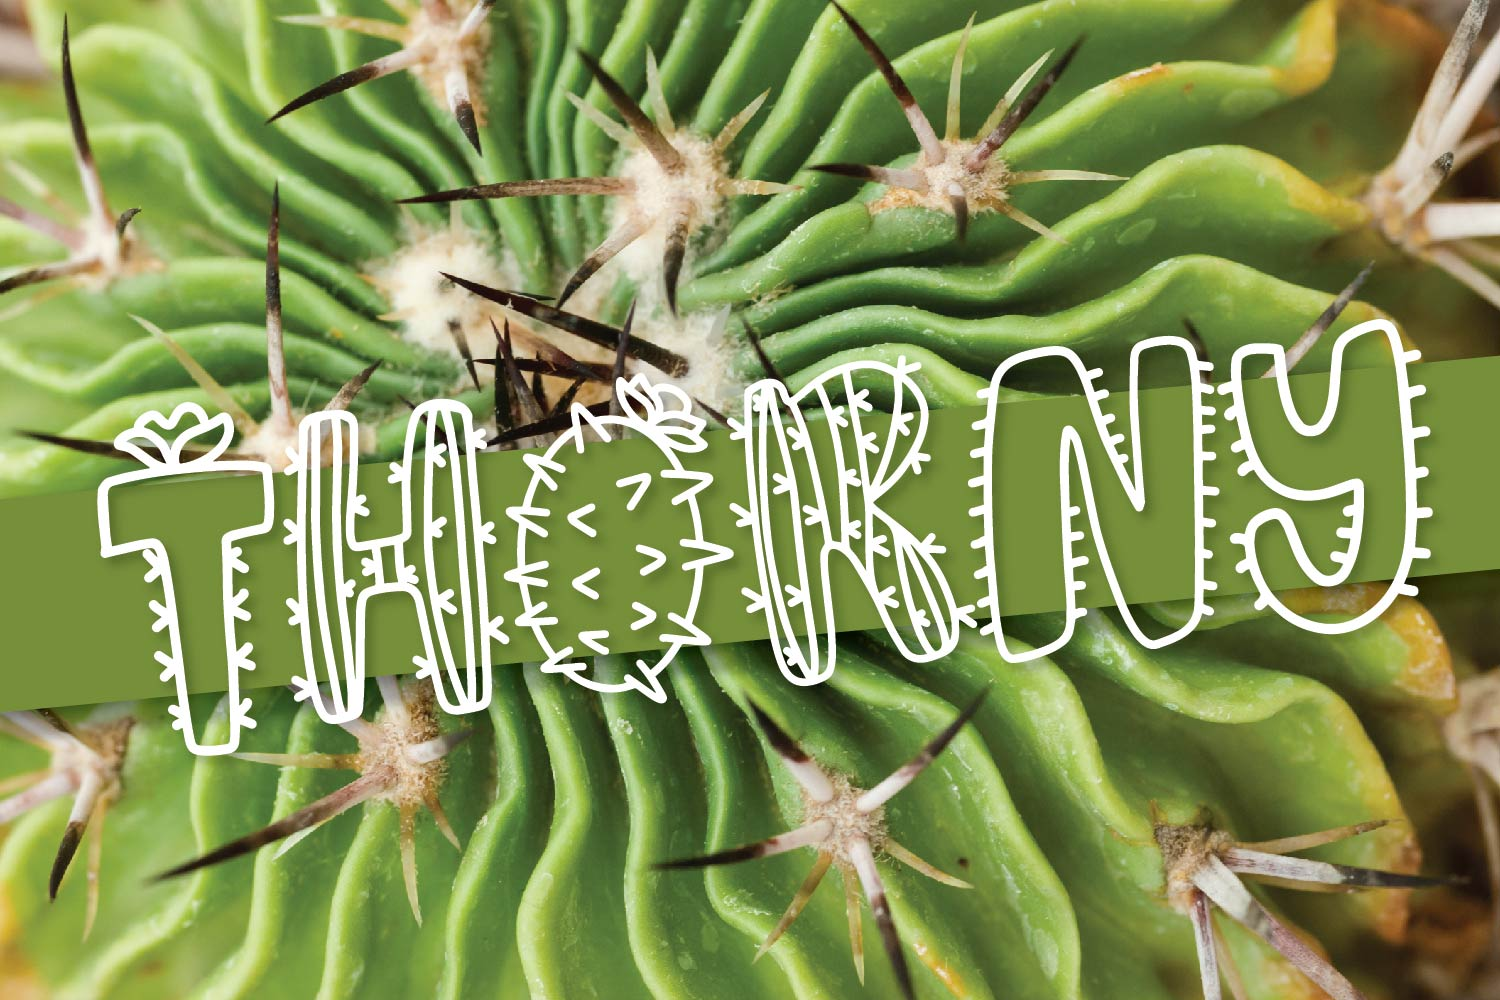 Thirsty Cactus - A Silly Cacti Font example image 3